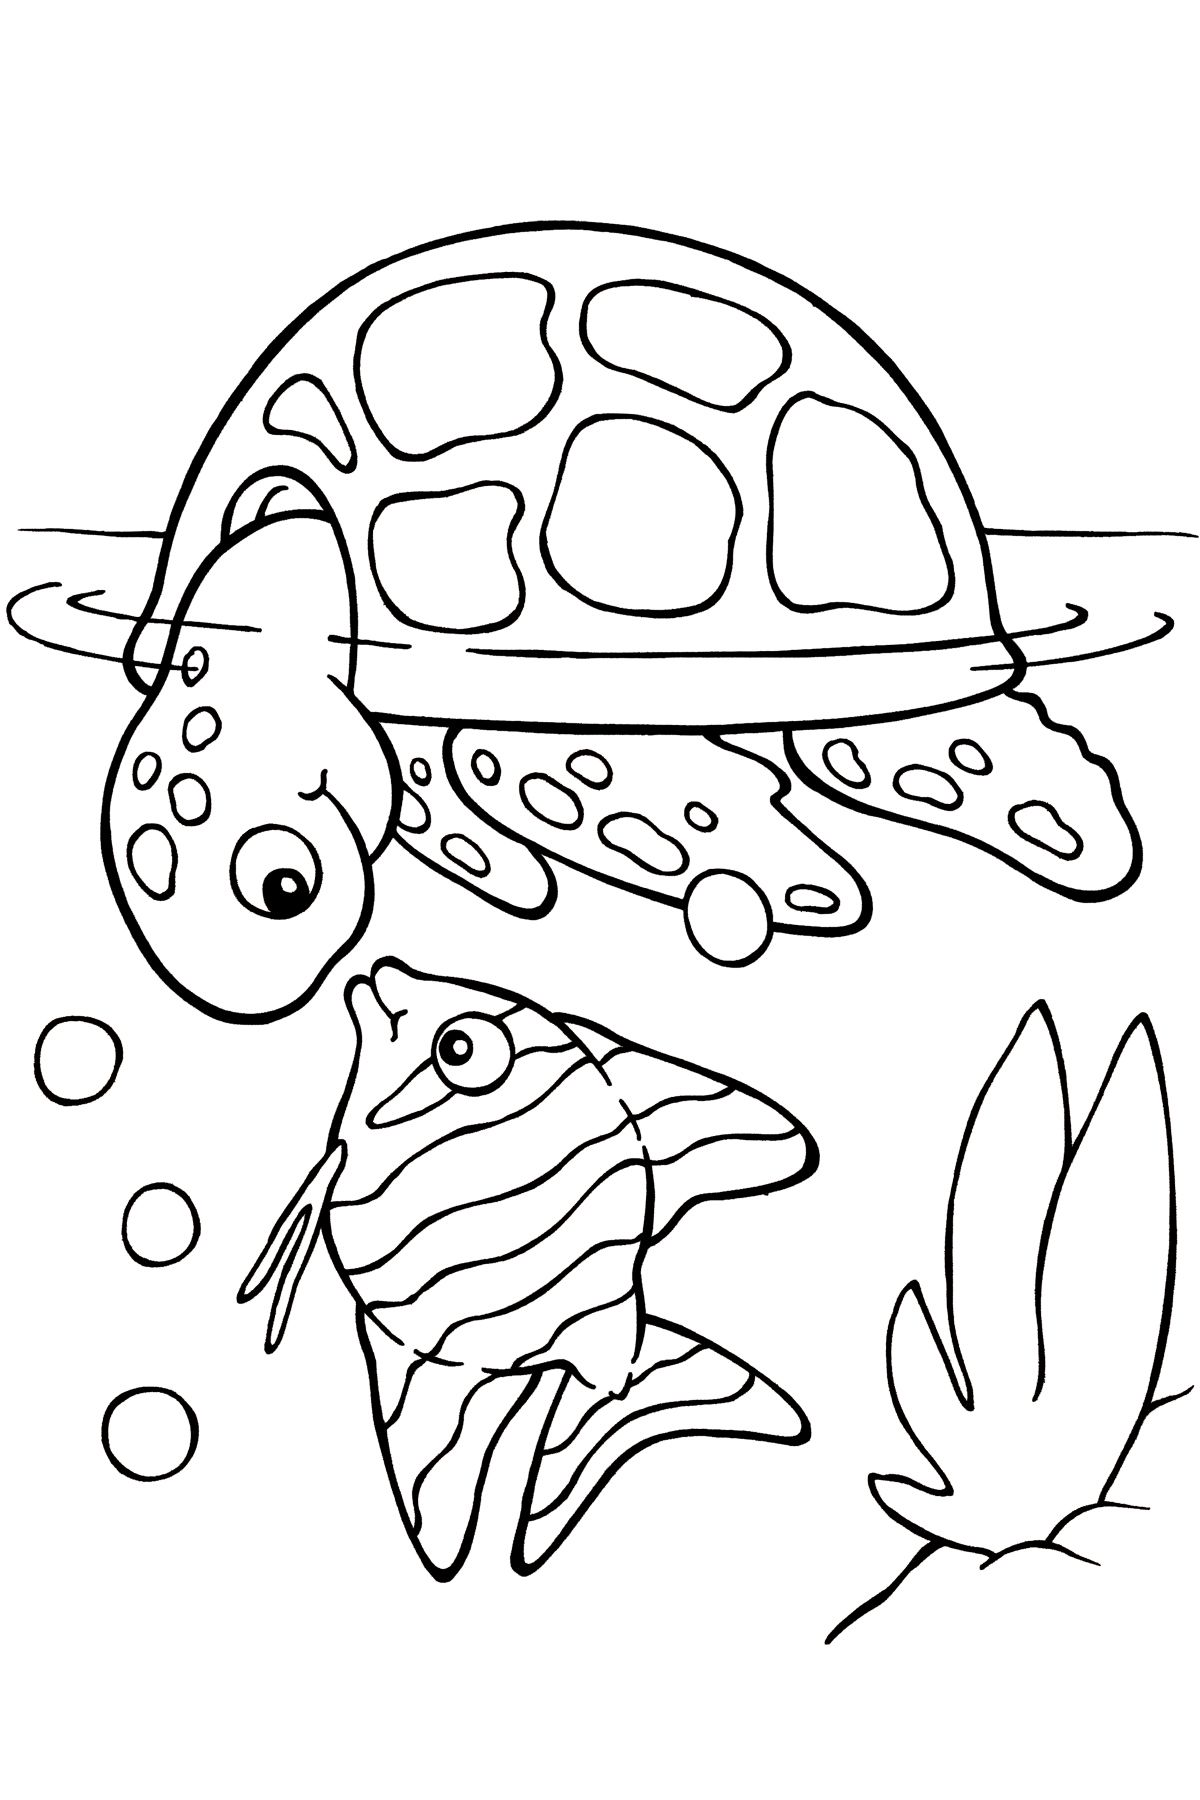 Pin By Jayne Perry On Library Stuff Coloring Pages Pinterest